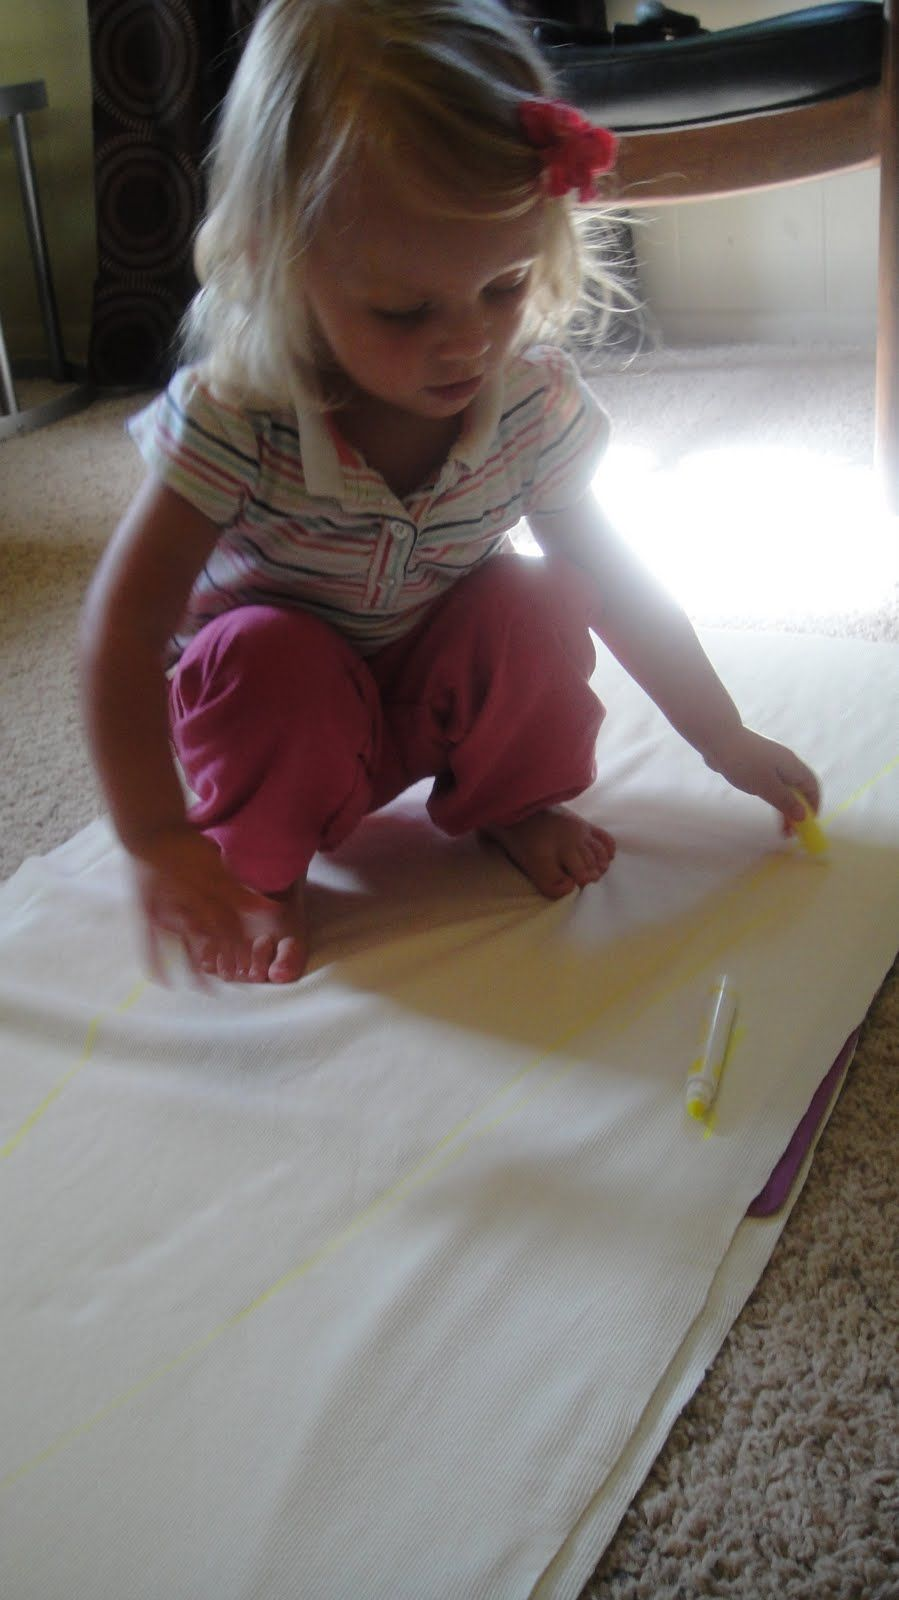 The Happy Hippie Homemaker: How to Make a Baby Wrap! Gonna try it!